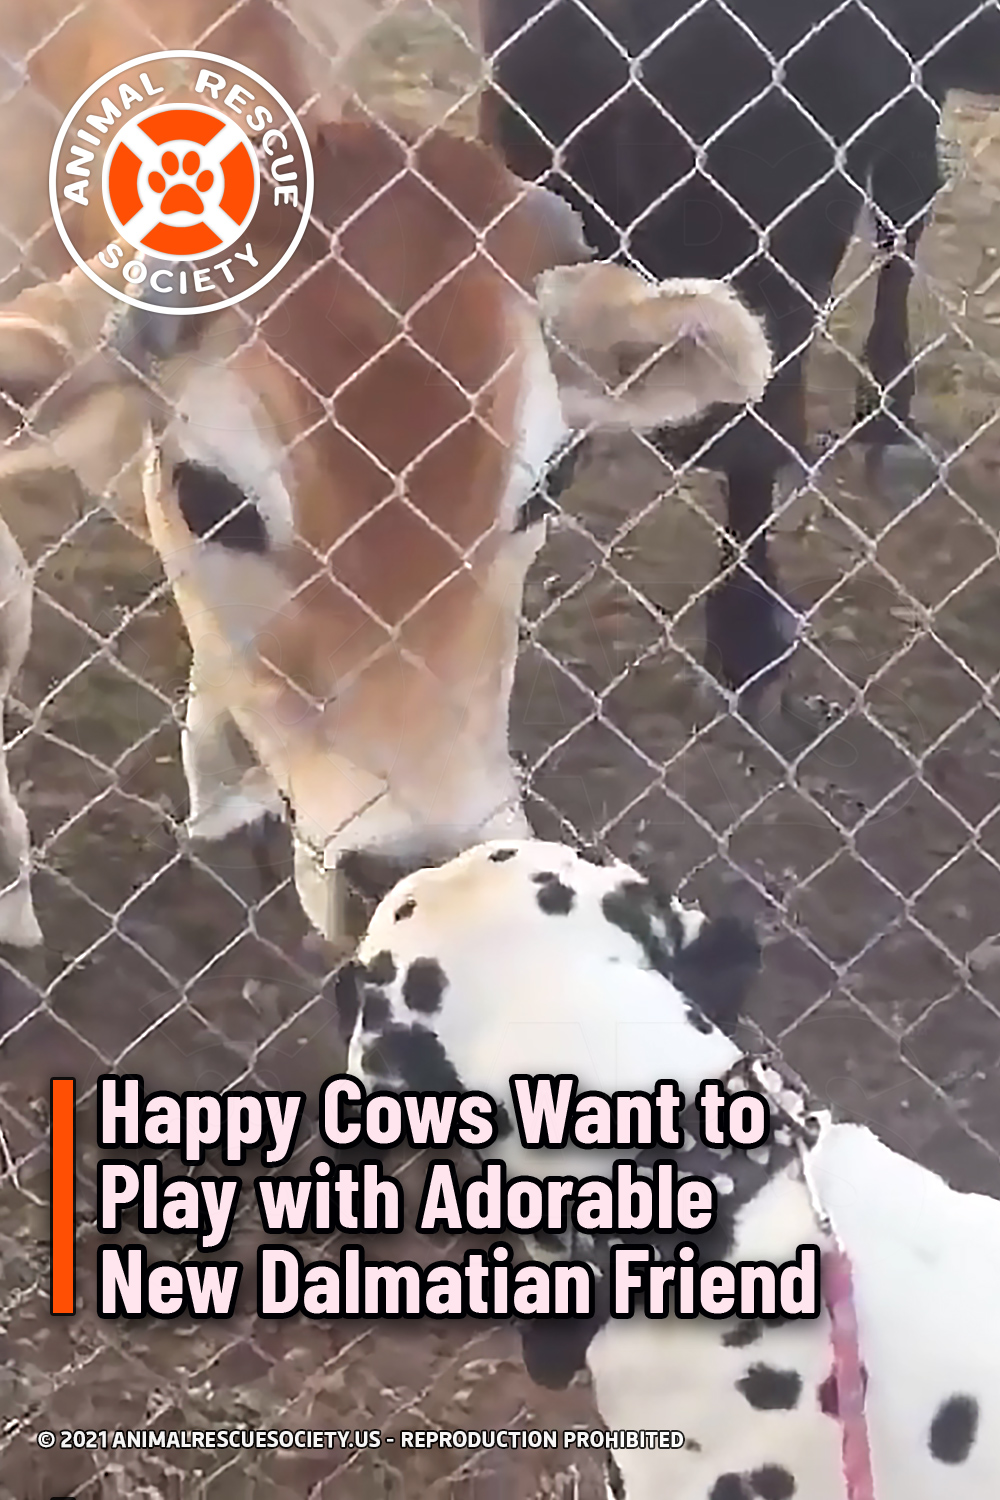 Happy Cows Want to Play with Adorable New Dalmatian Friend